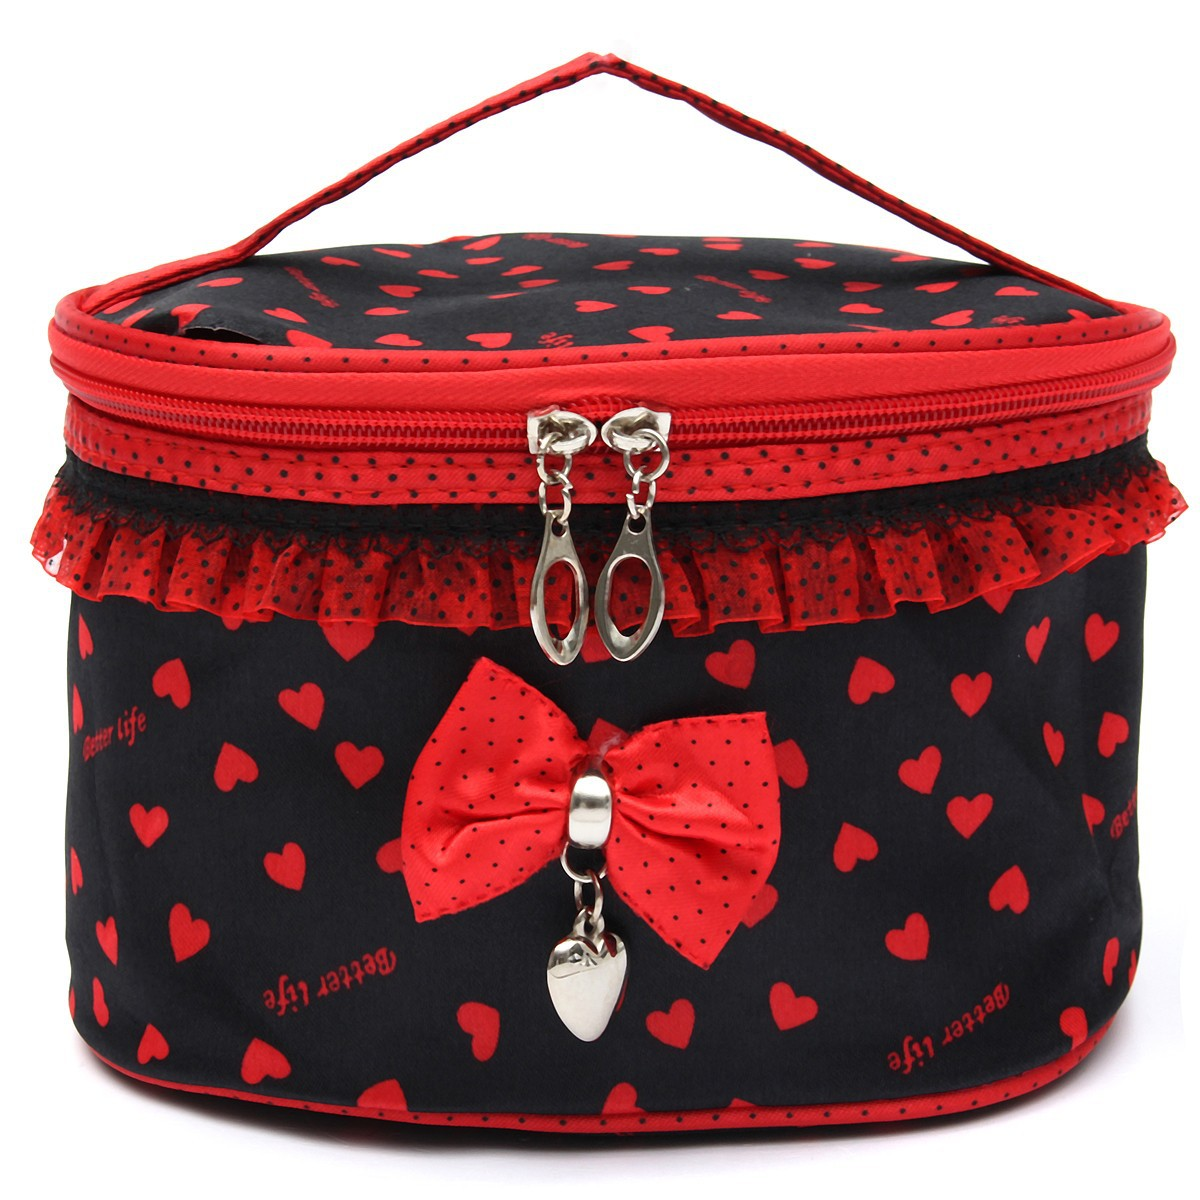 toilette pochette trousse organisateur sac main rangement voyage maquillage ebay. Black Bedroom Furniture Sets. Home Design Ideas